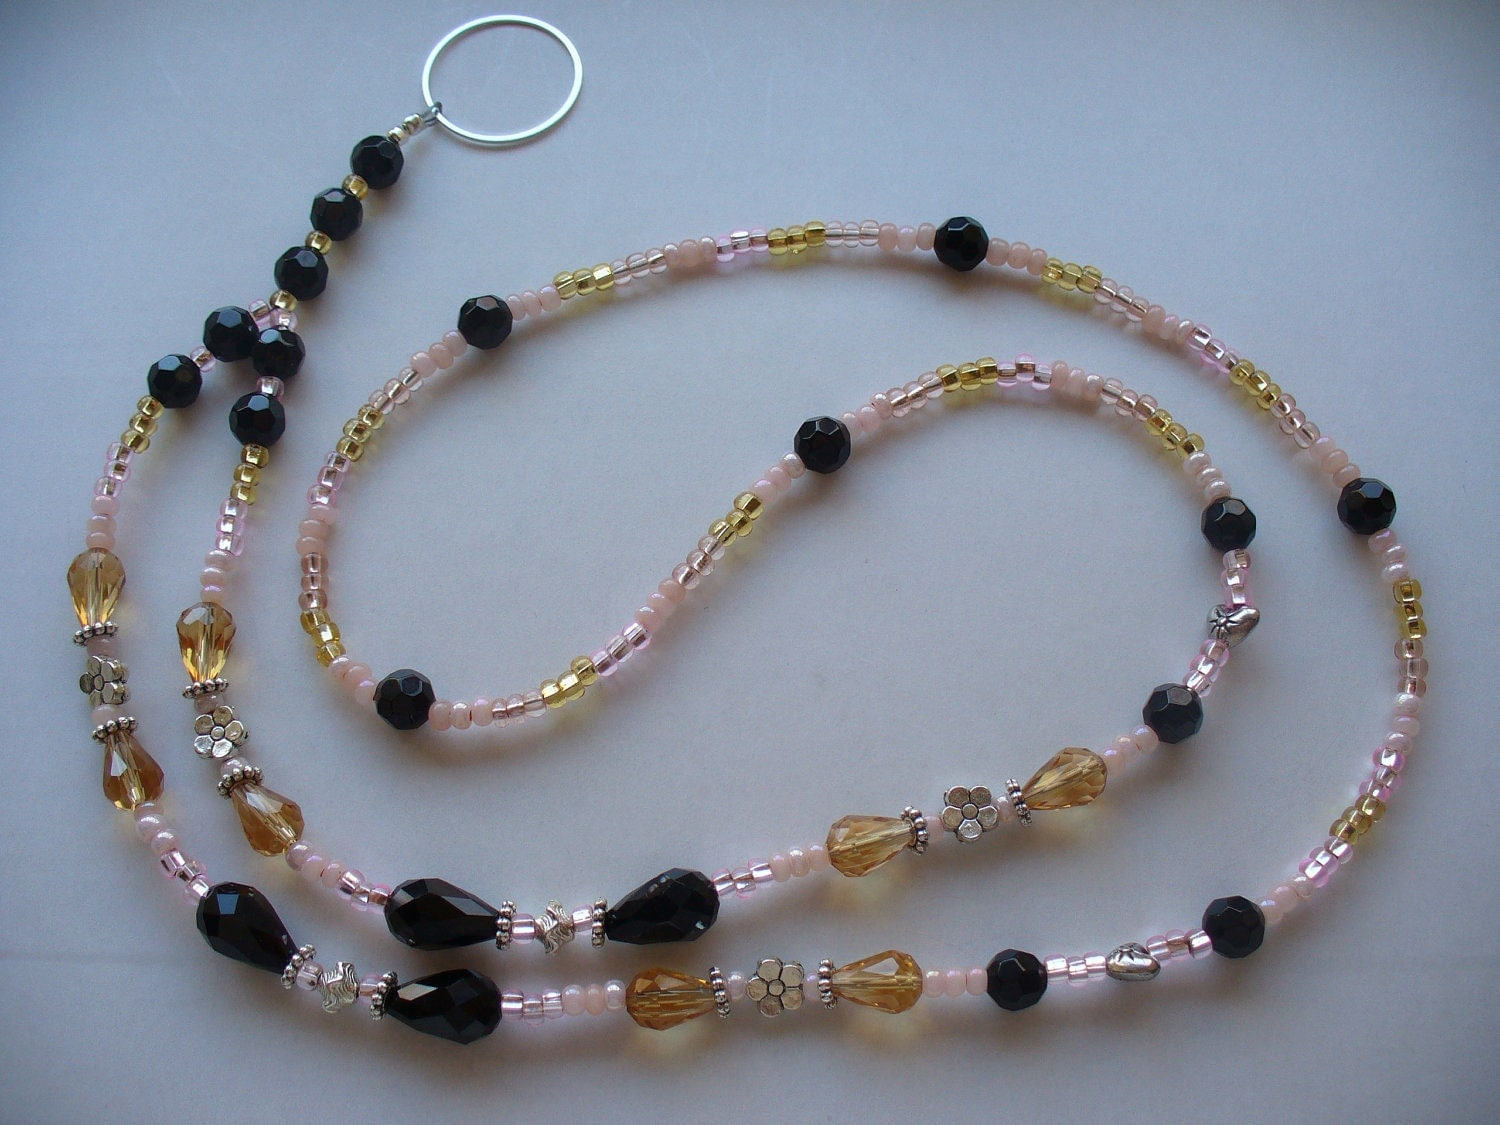 lanyard necklace black gold and pink lanyard necklace with